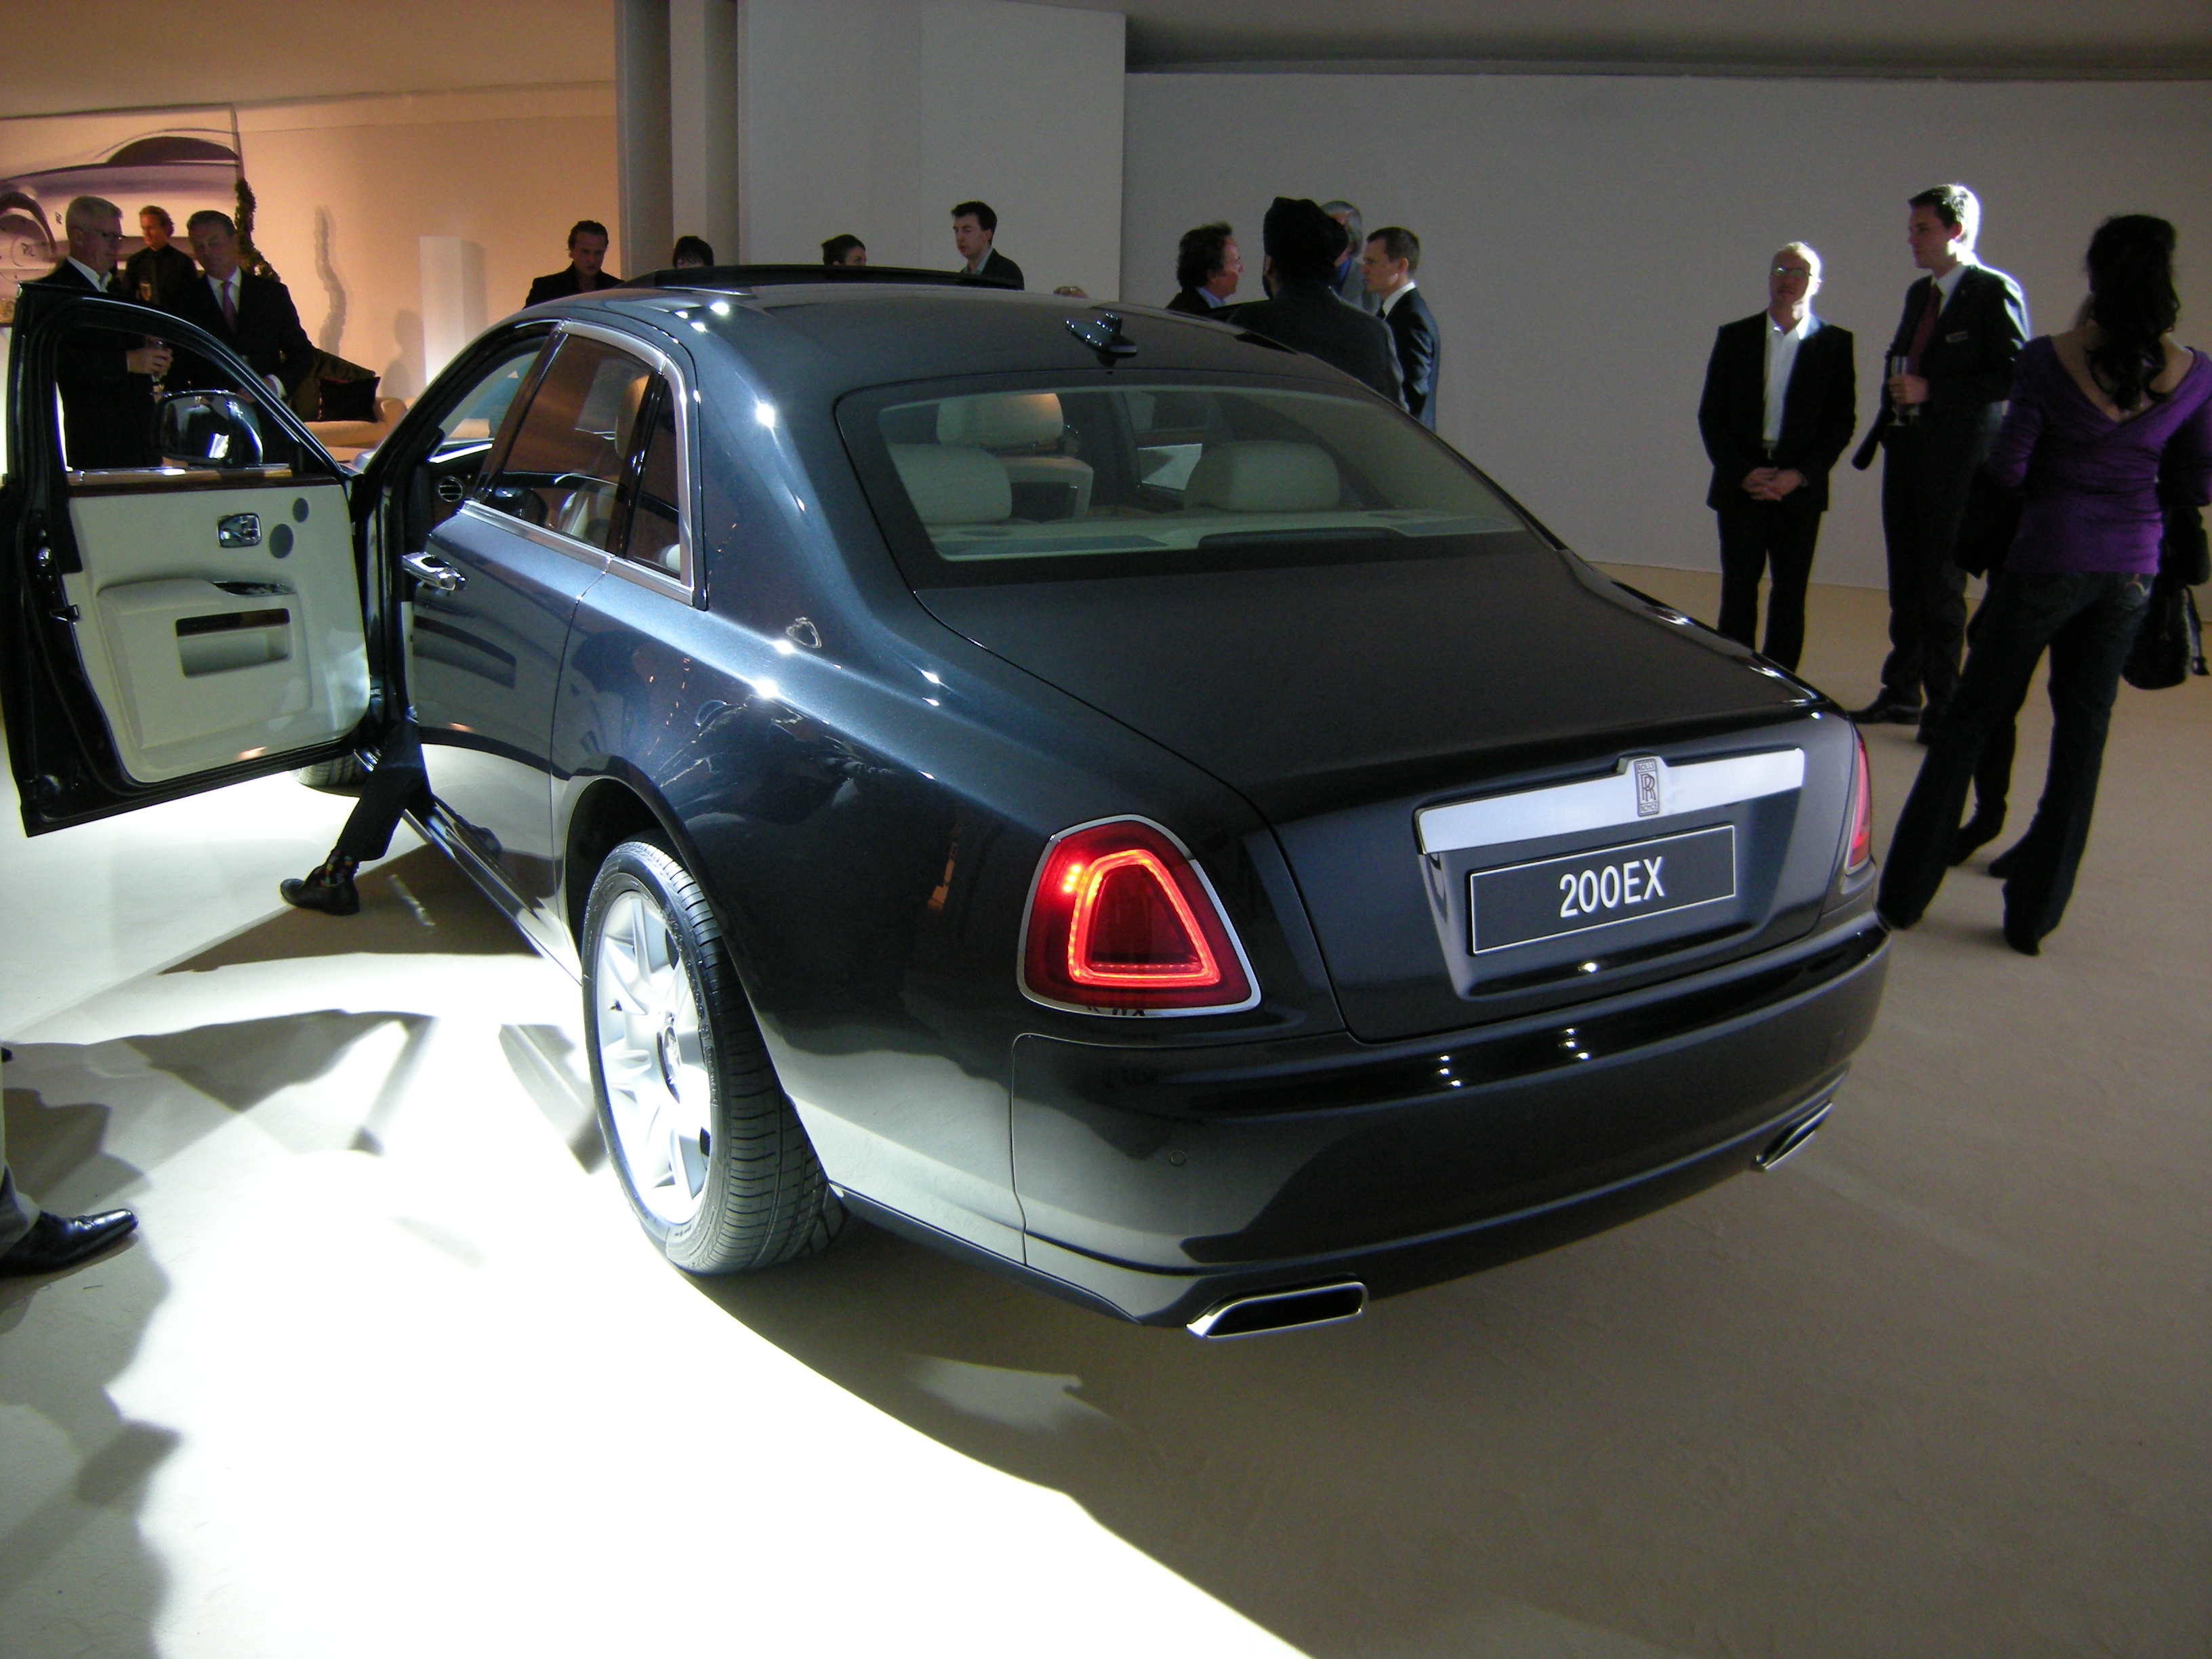 File:Rolls Royce 200EX u0027Ghostu0027 - Flickr - The Car Spy (5